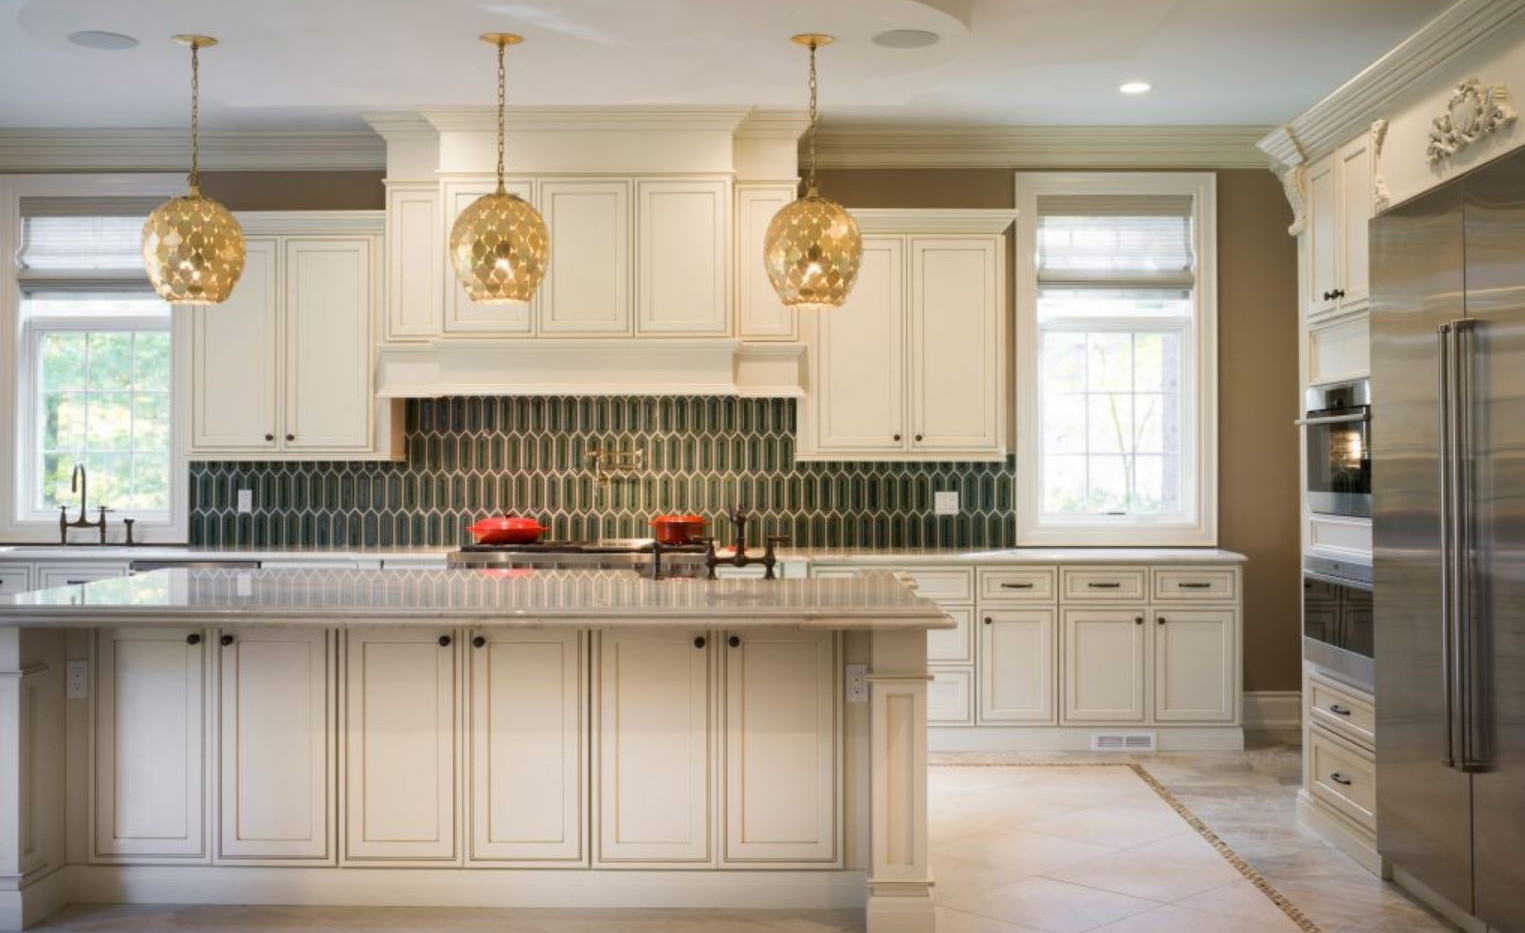 pearl glazed kitchen 1.JPG